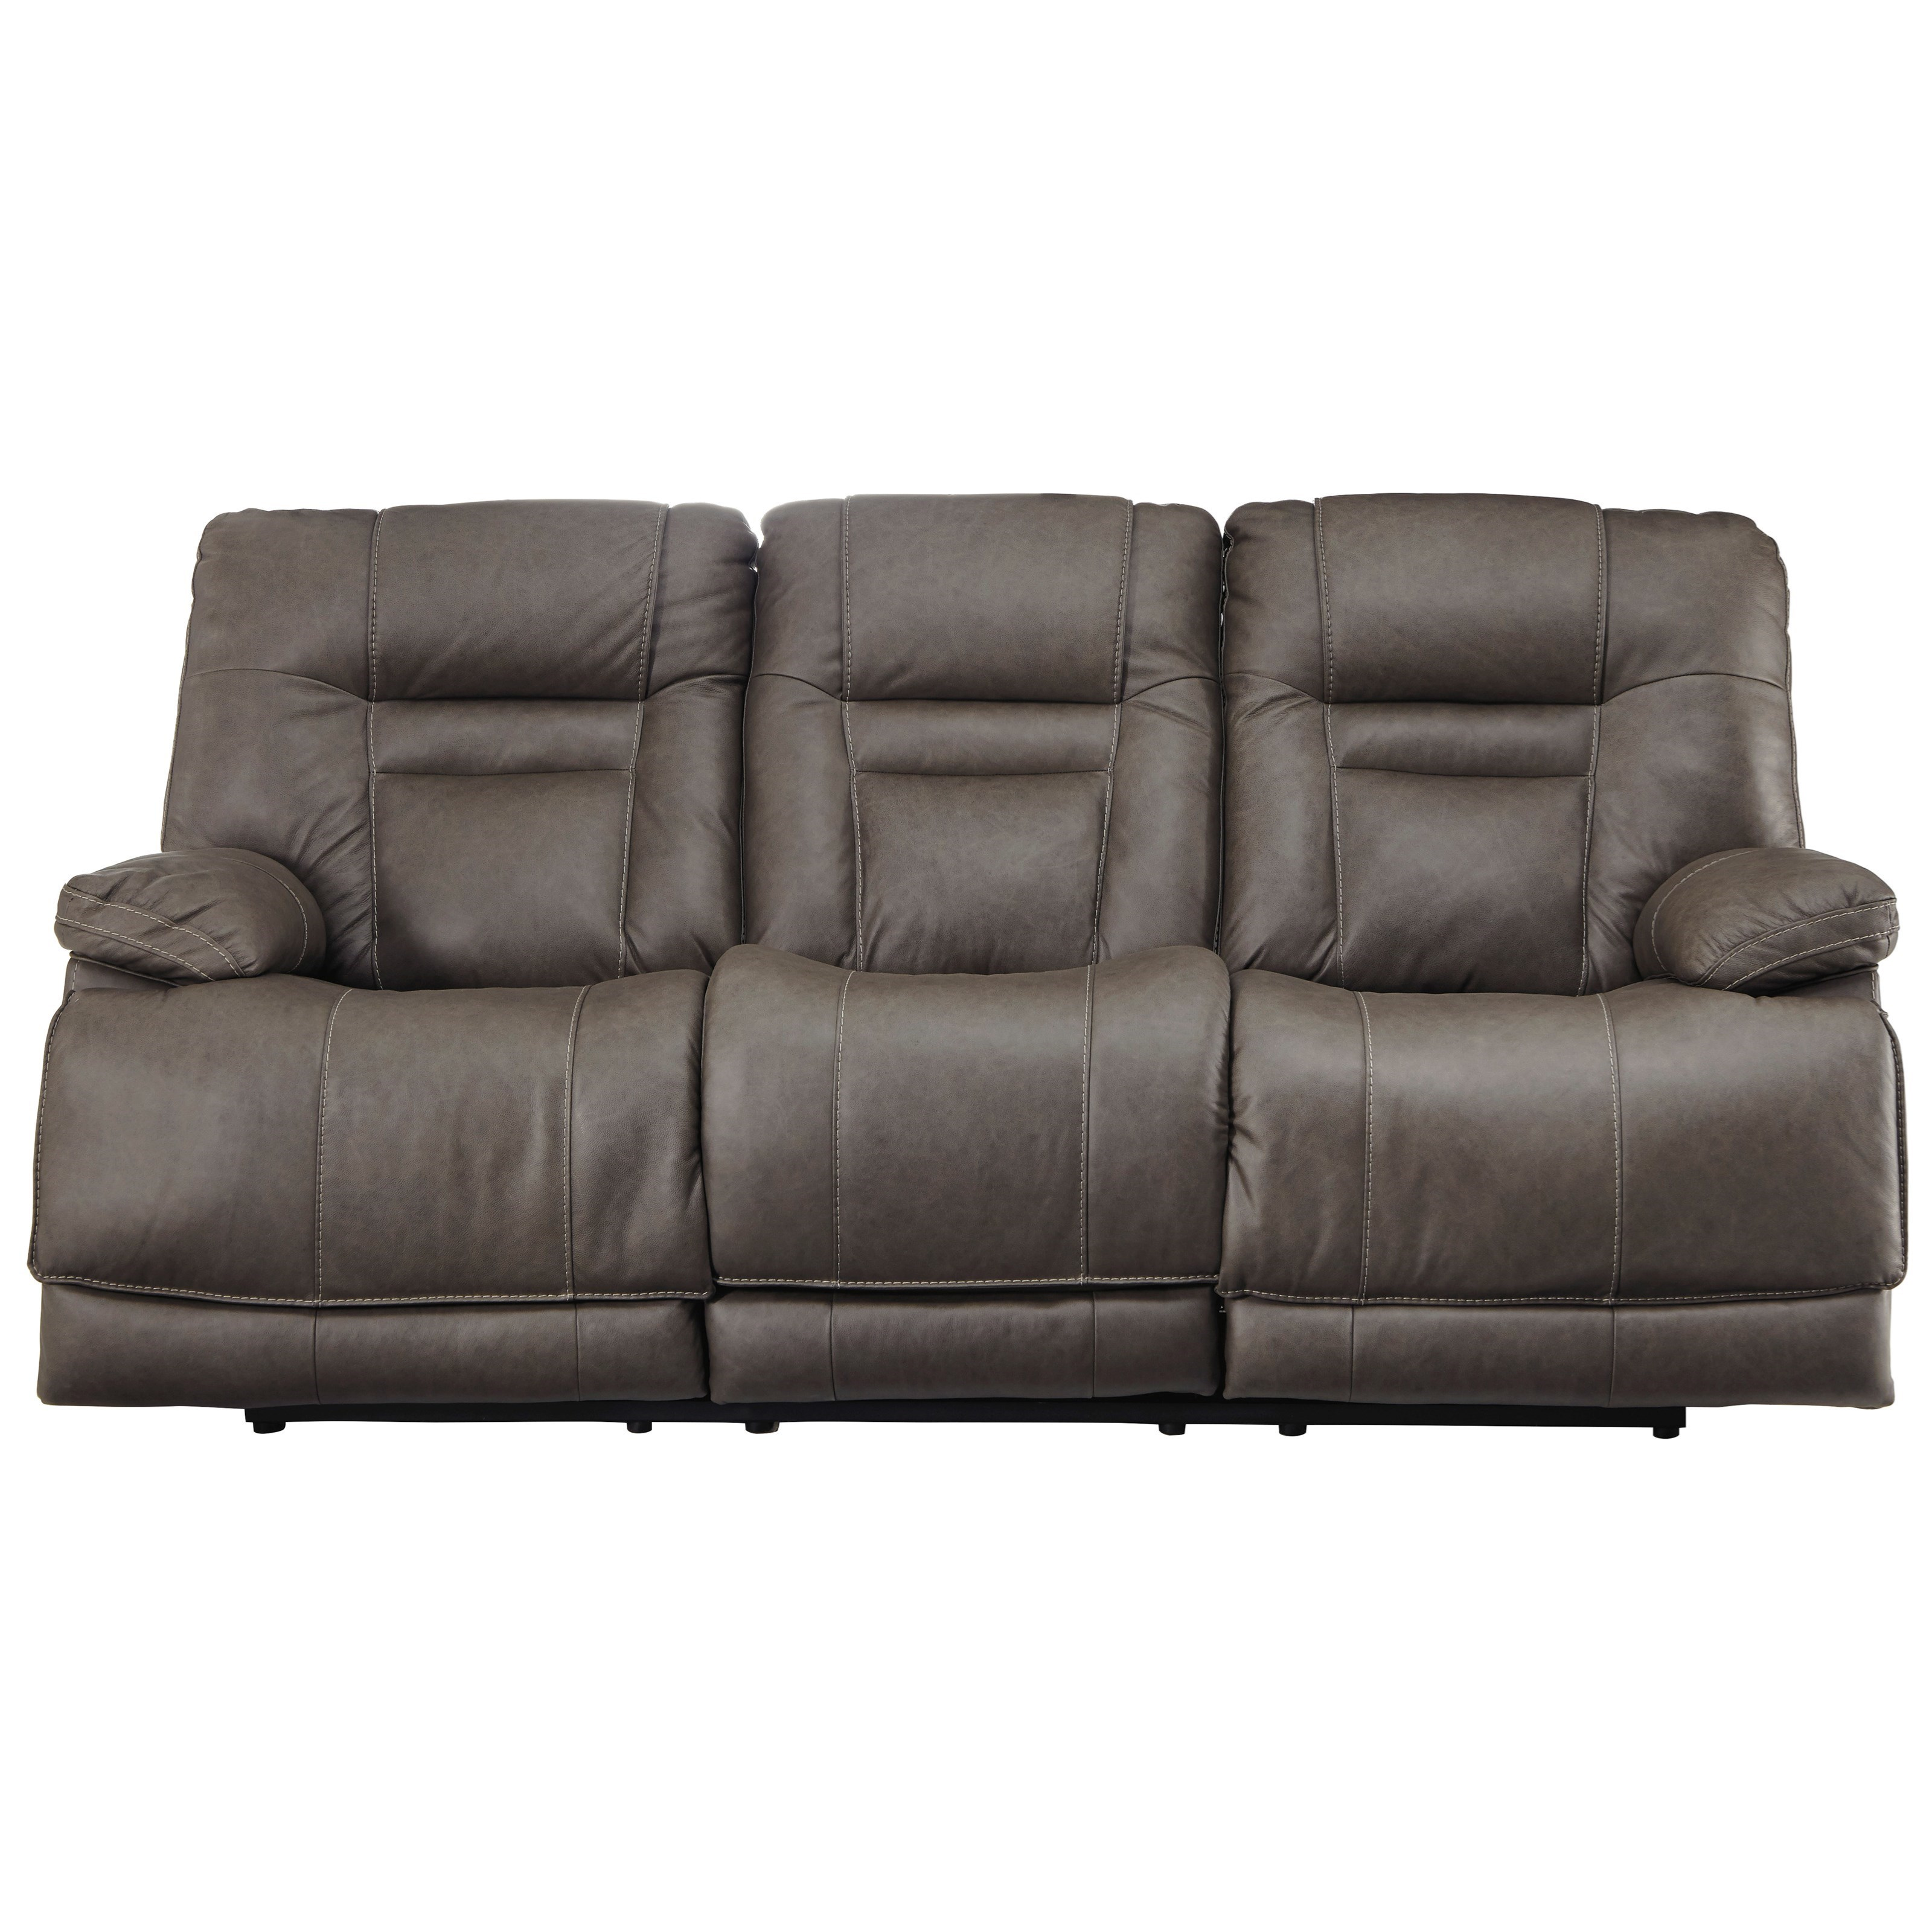 Signature Design By Ashley Wurstrow Power Reclining Sofa With Adjustable Head Rest And Usb Port Wayside Furniture Reclining Sofas